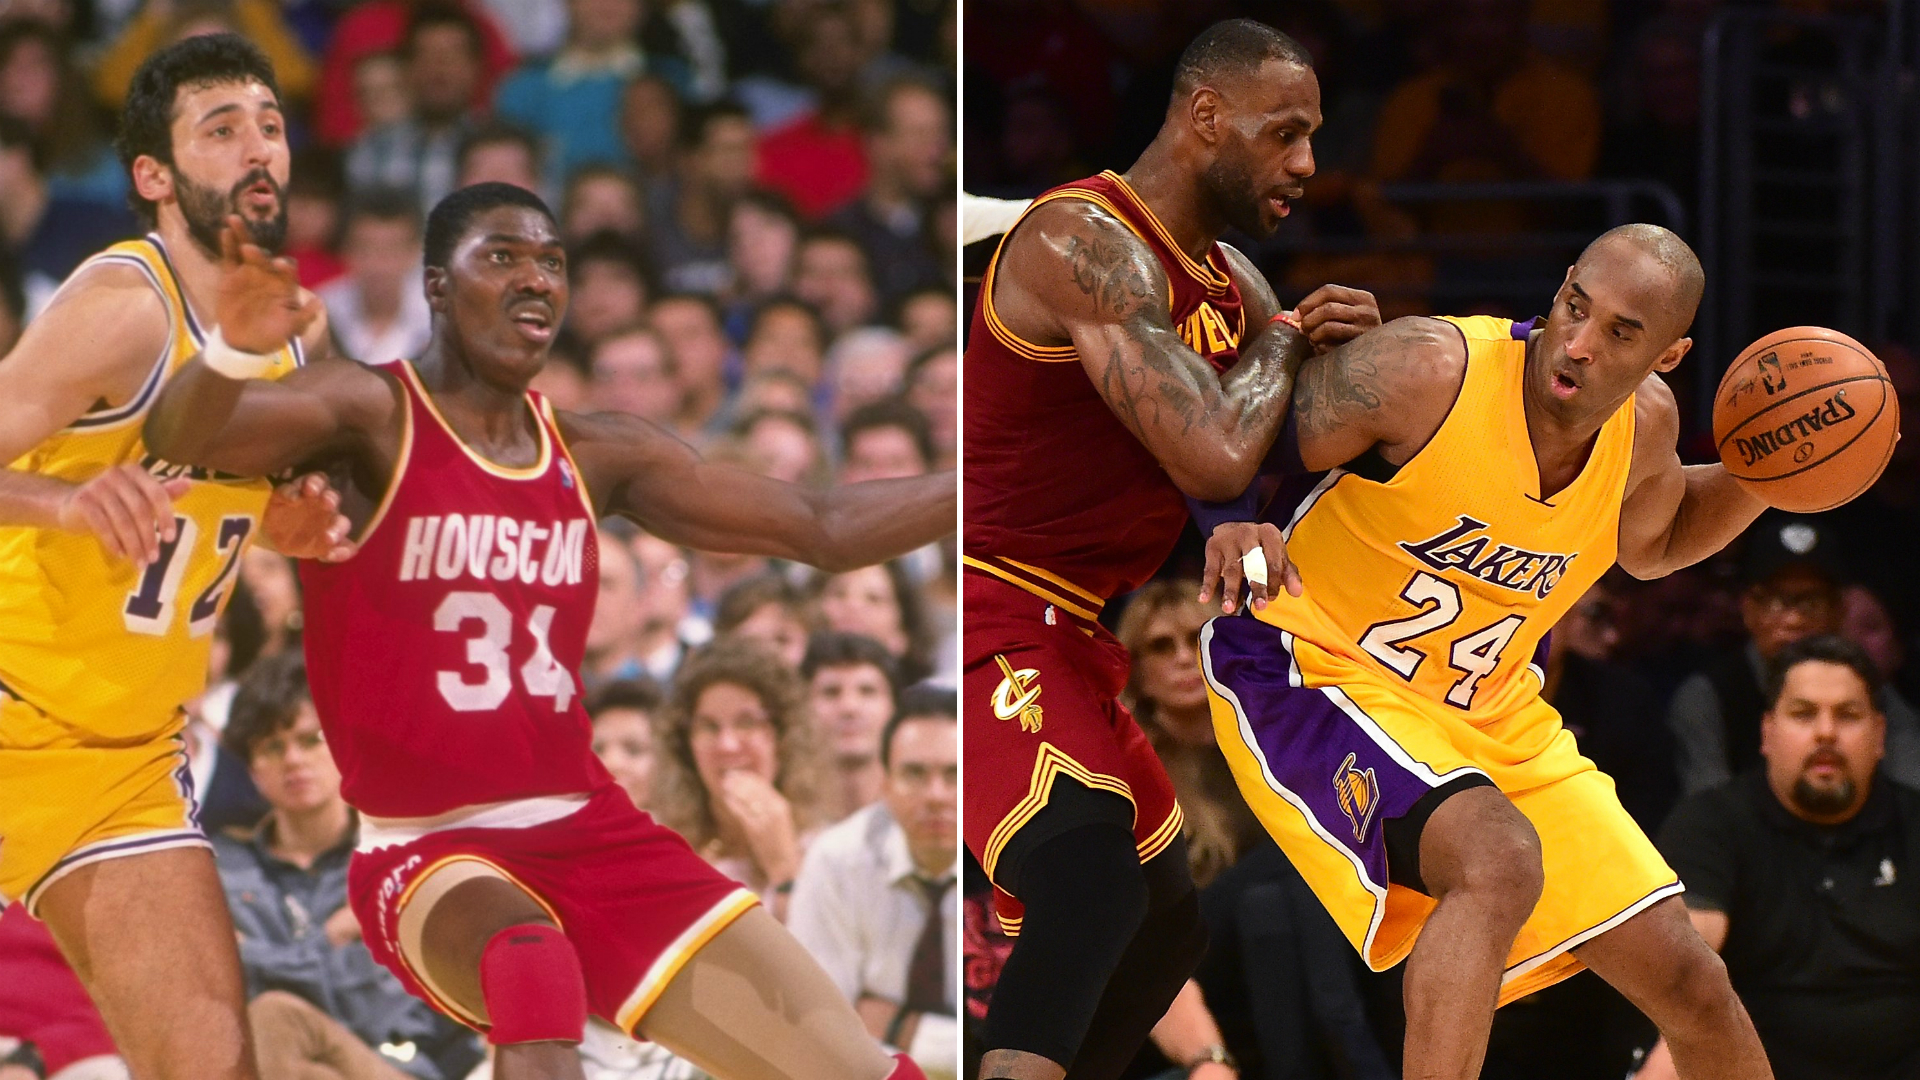 Hakeem Olajuwon says Kobe Bryant was his greatest success as a